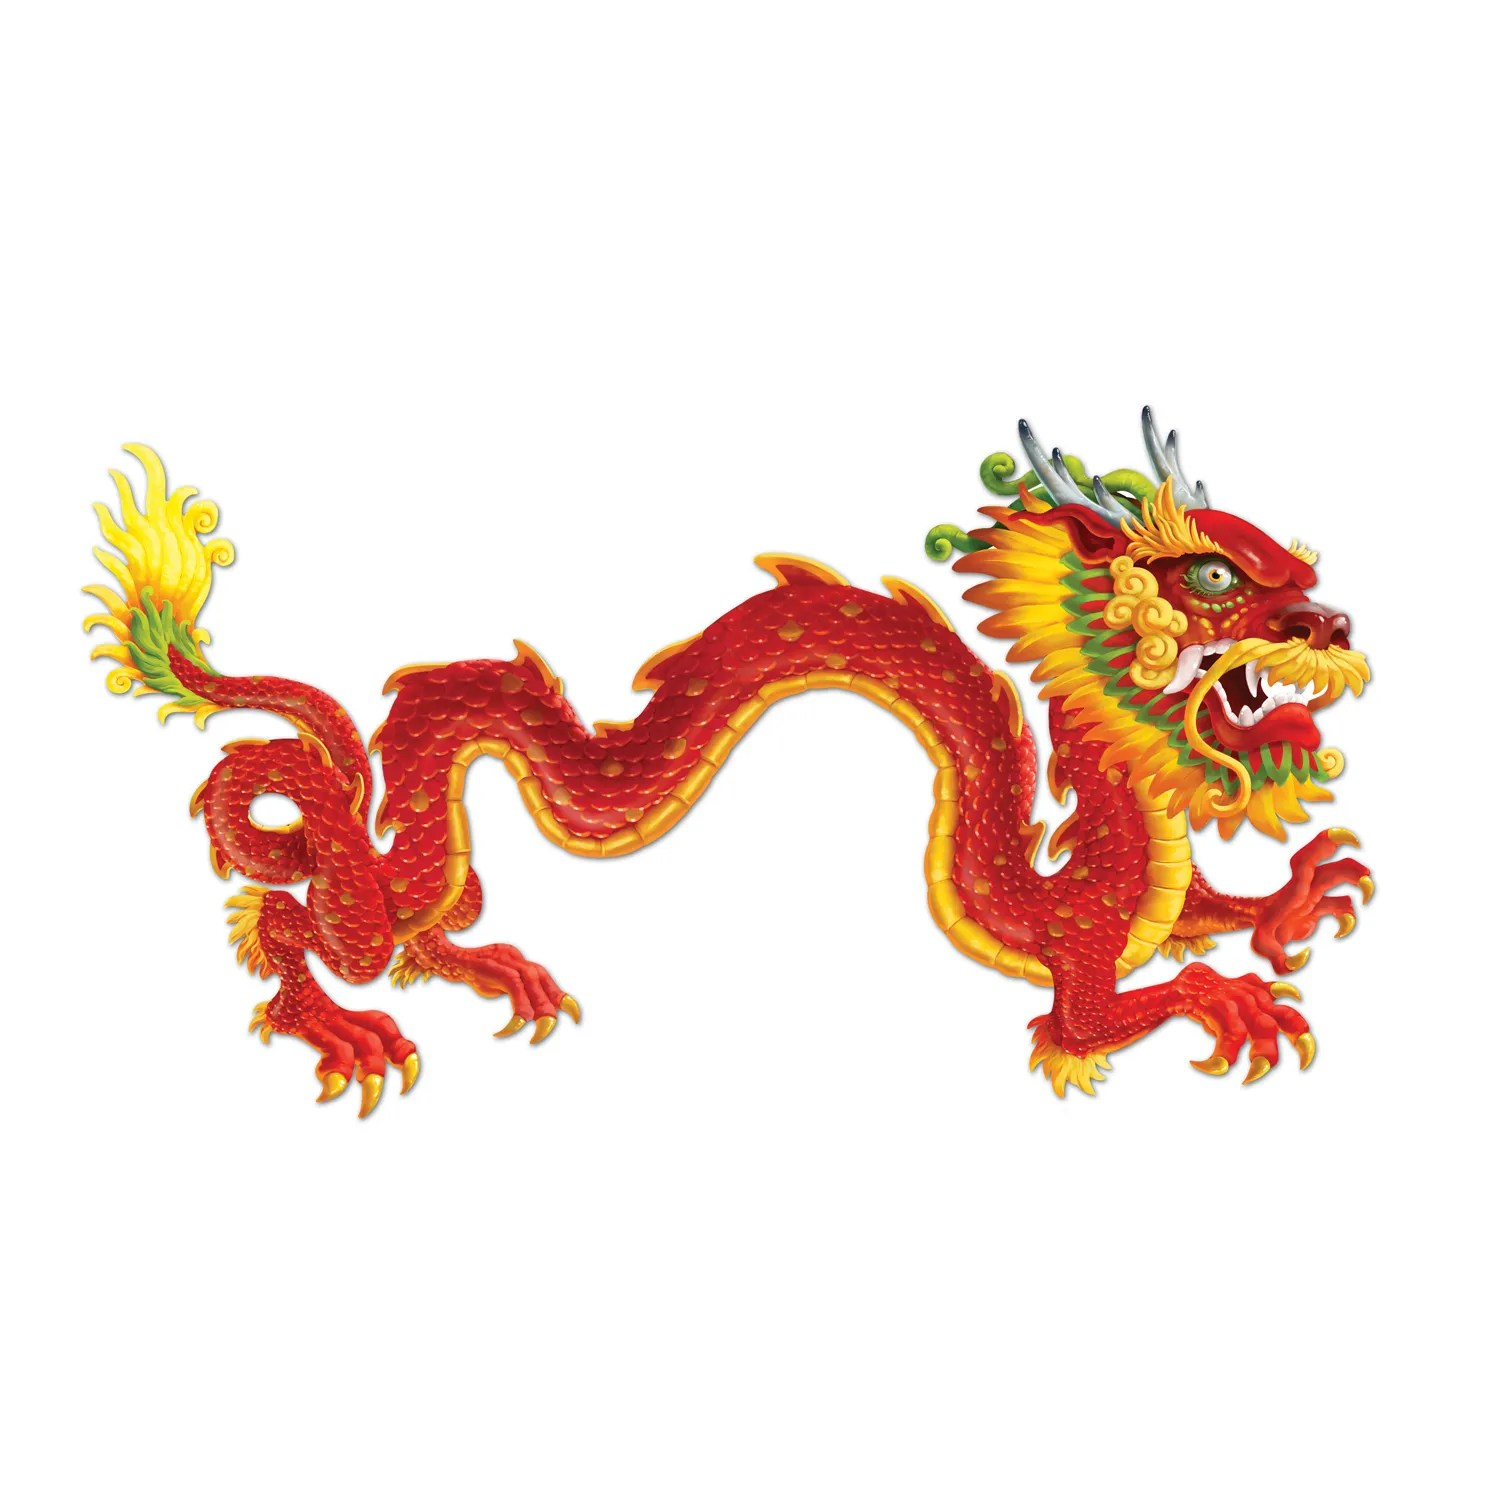 Chinese Dragon Decor Chinese Dragon Asian Party Decoration Jointed Cardboard